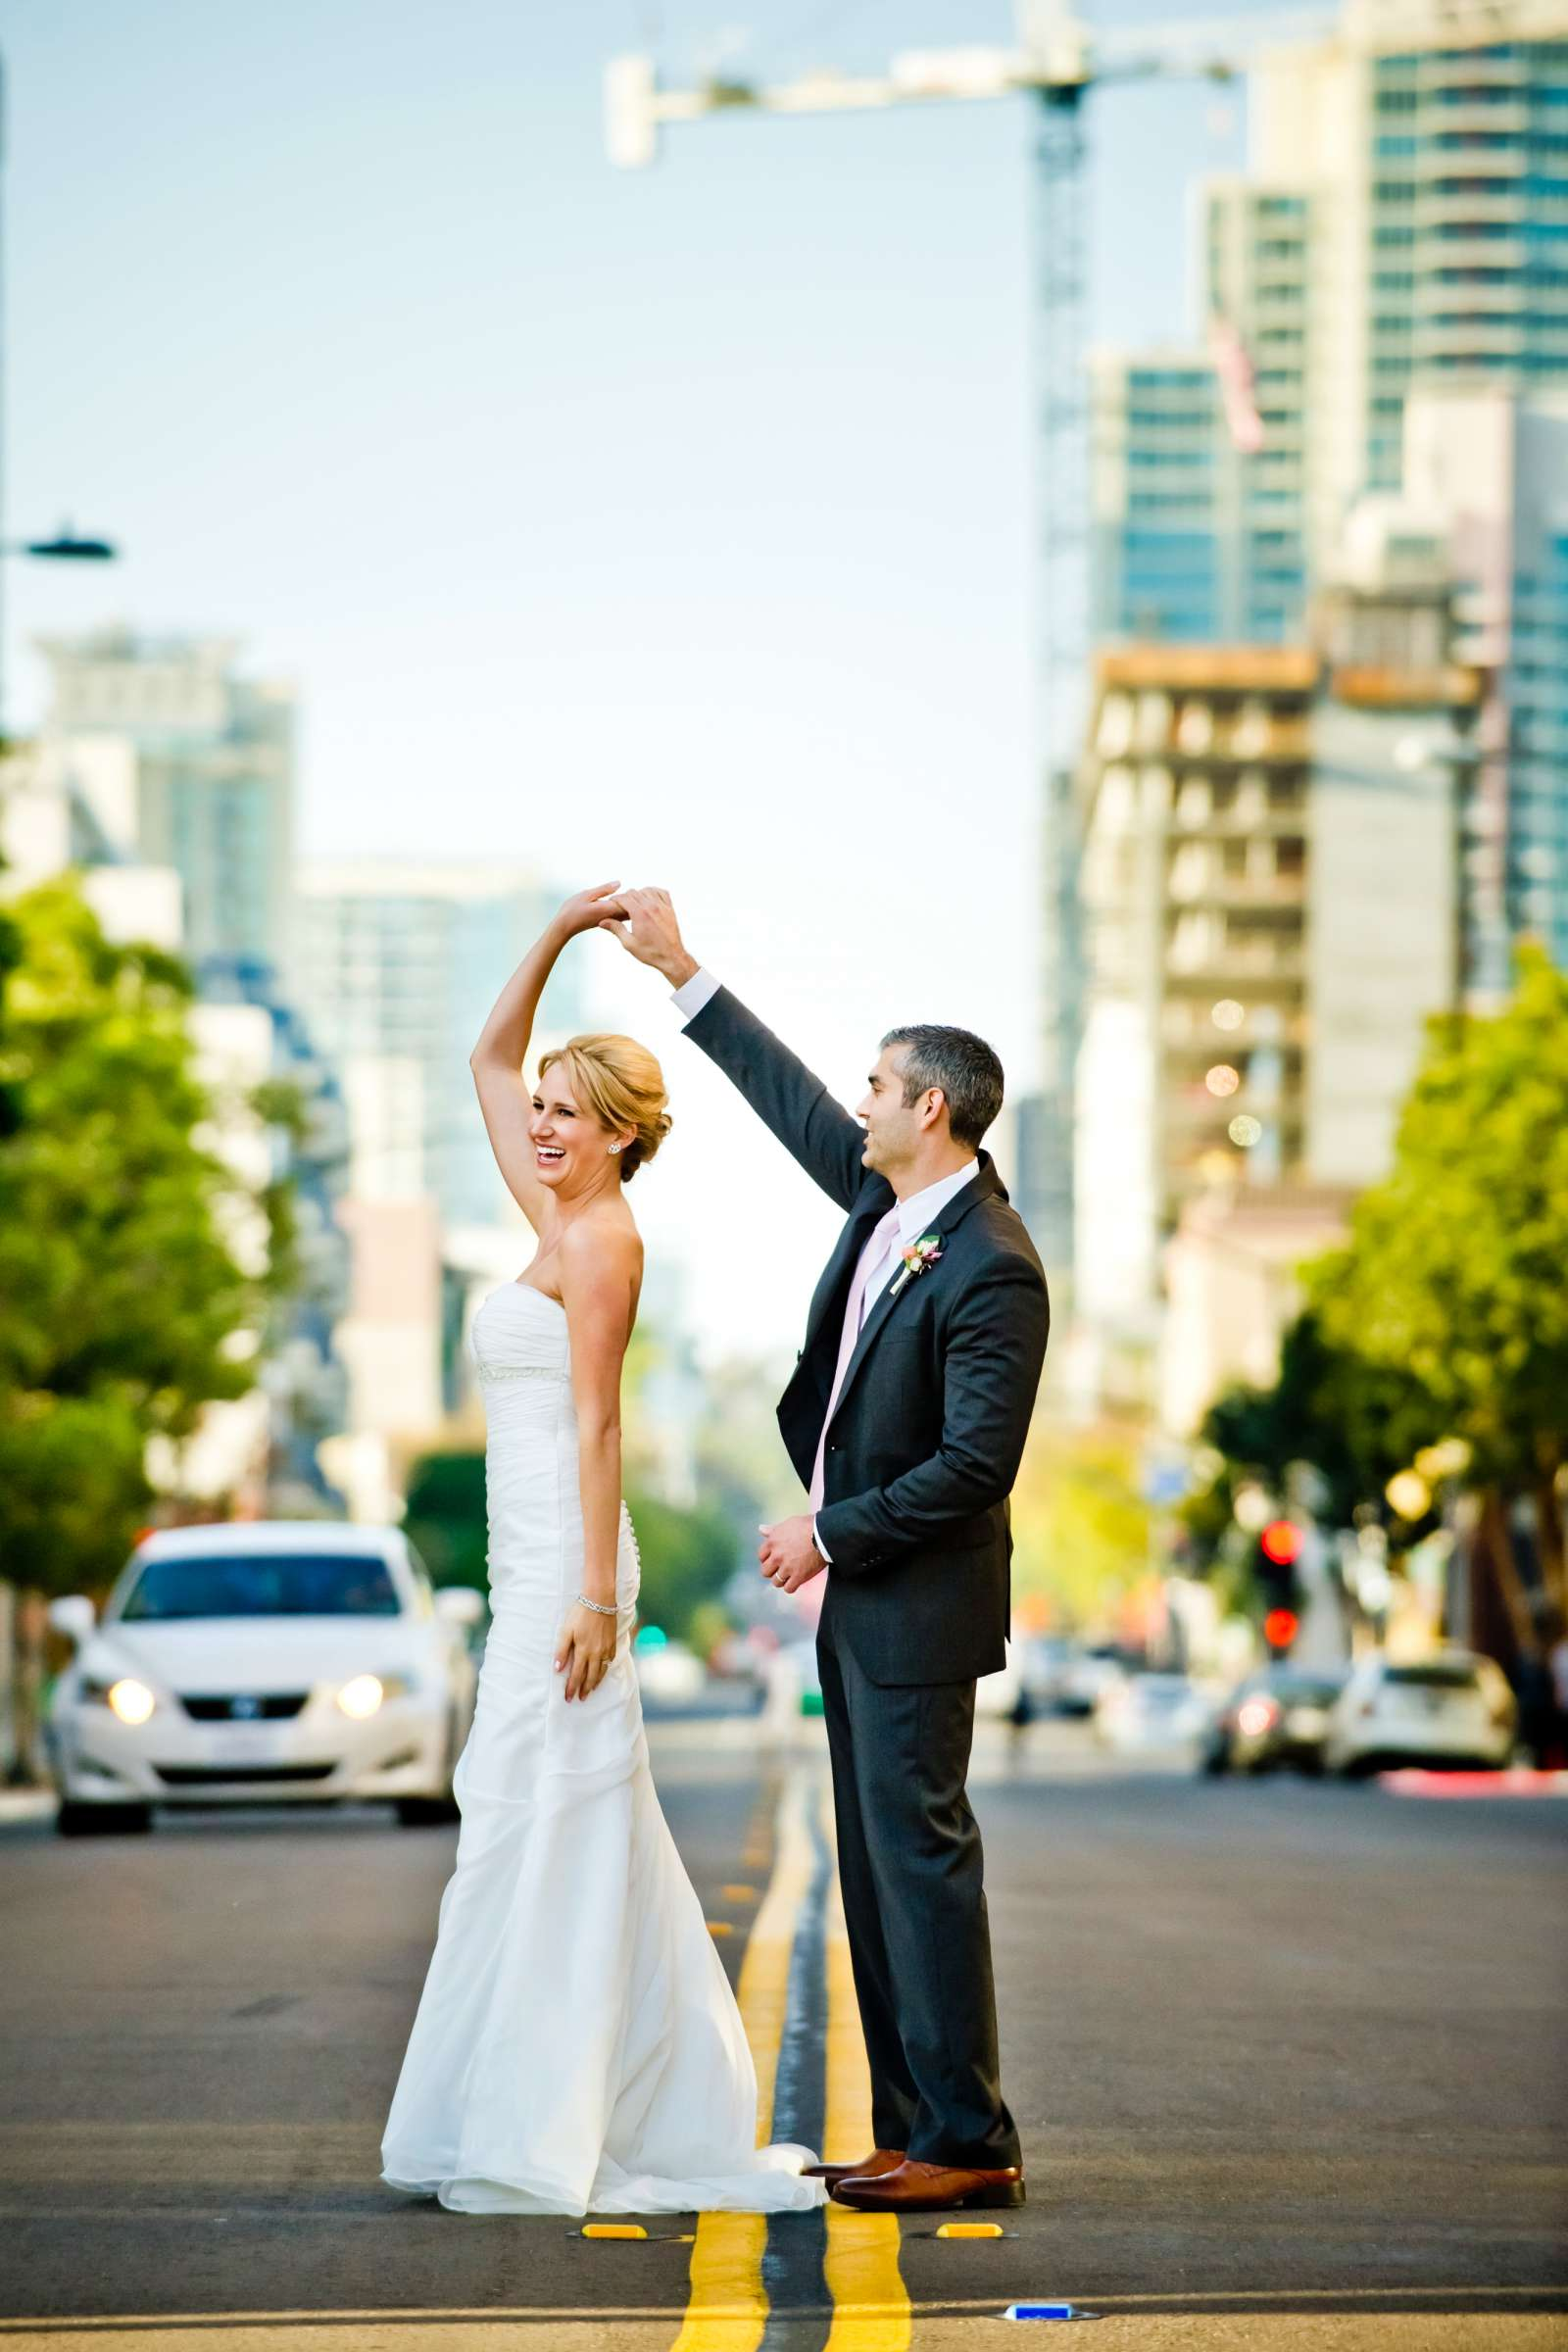 Urban Downtown at Ultimate Skybox Wedding, Chelsea and Frank Wedding Photo #16 by True Photography